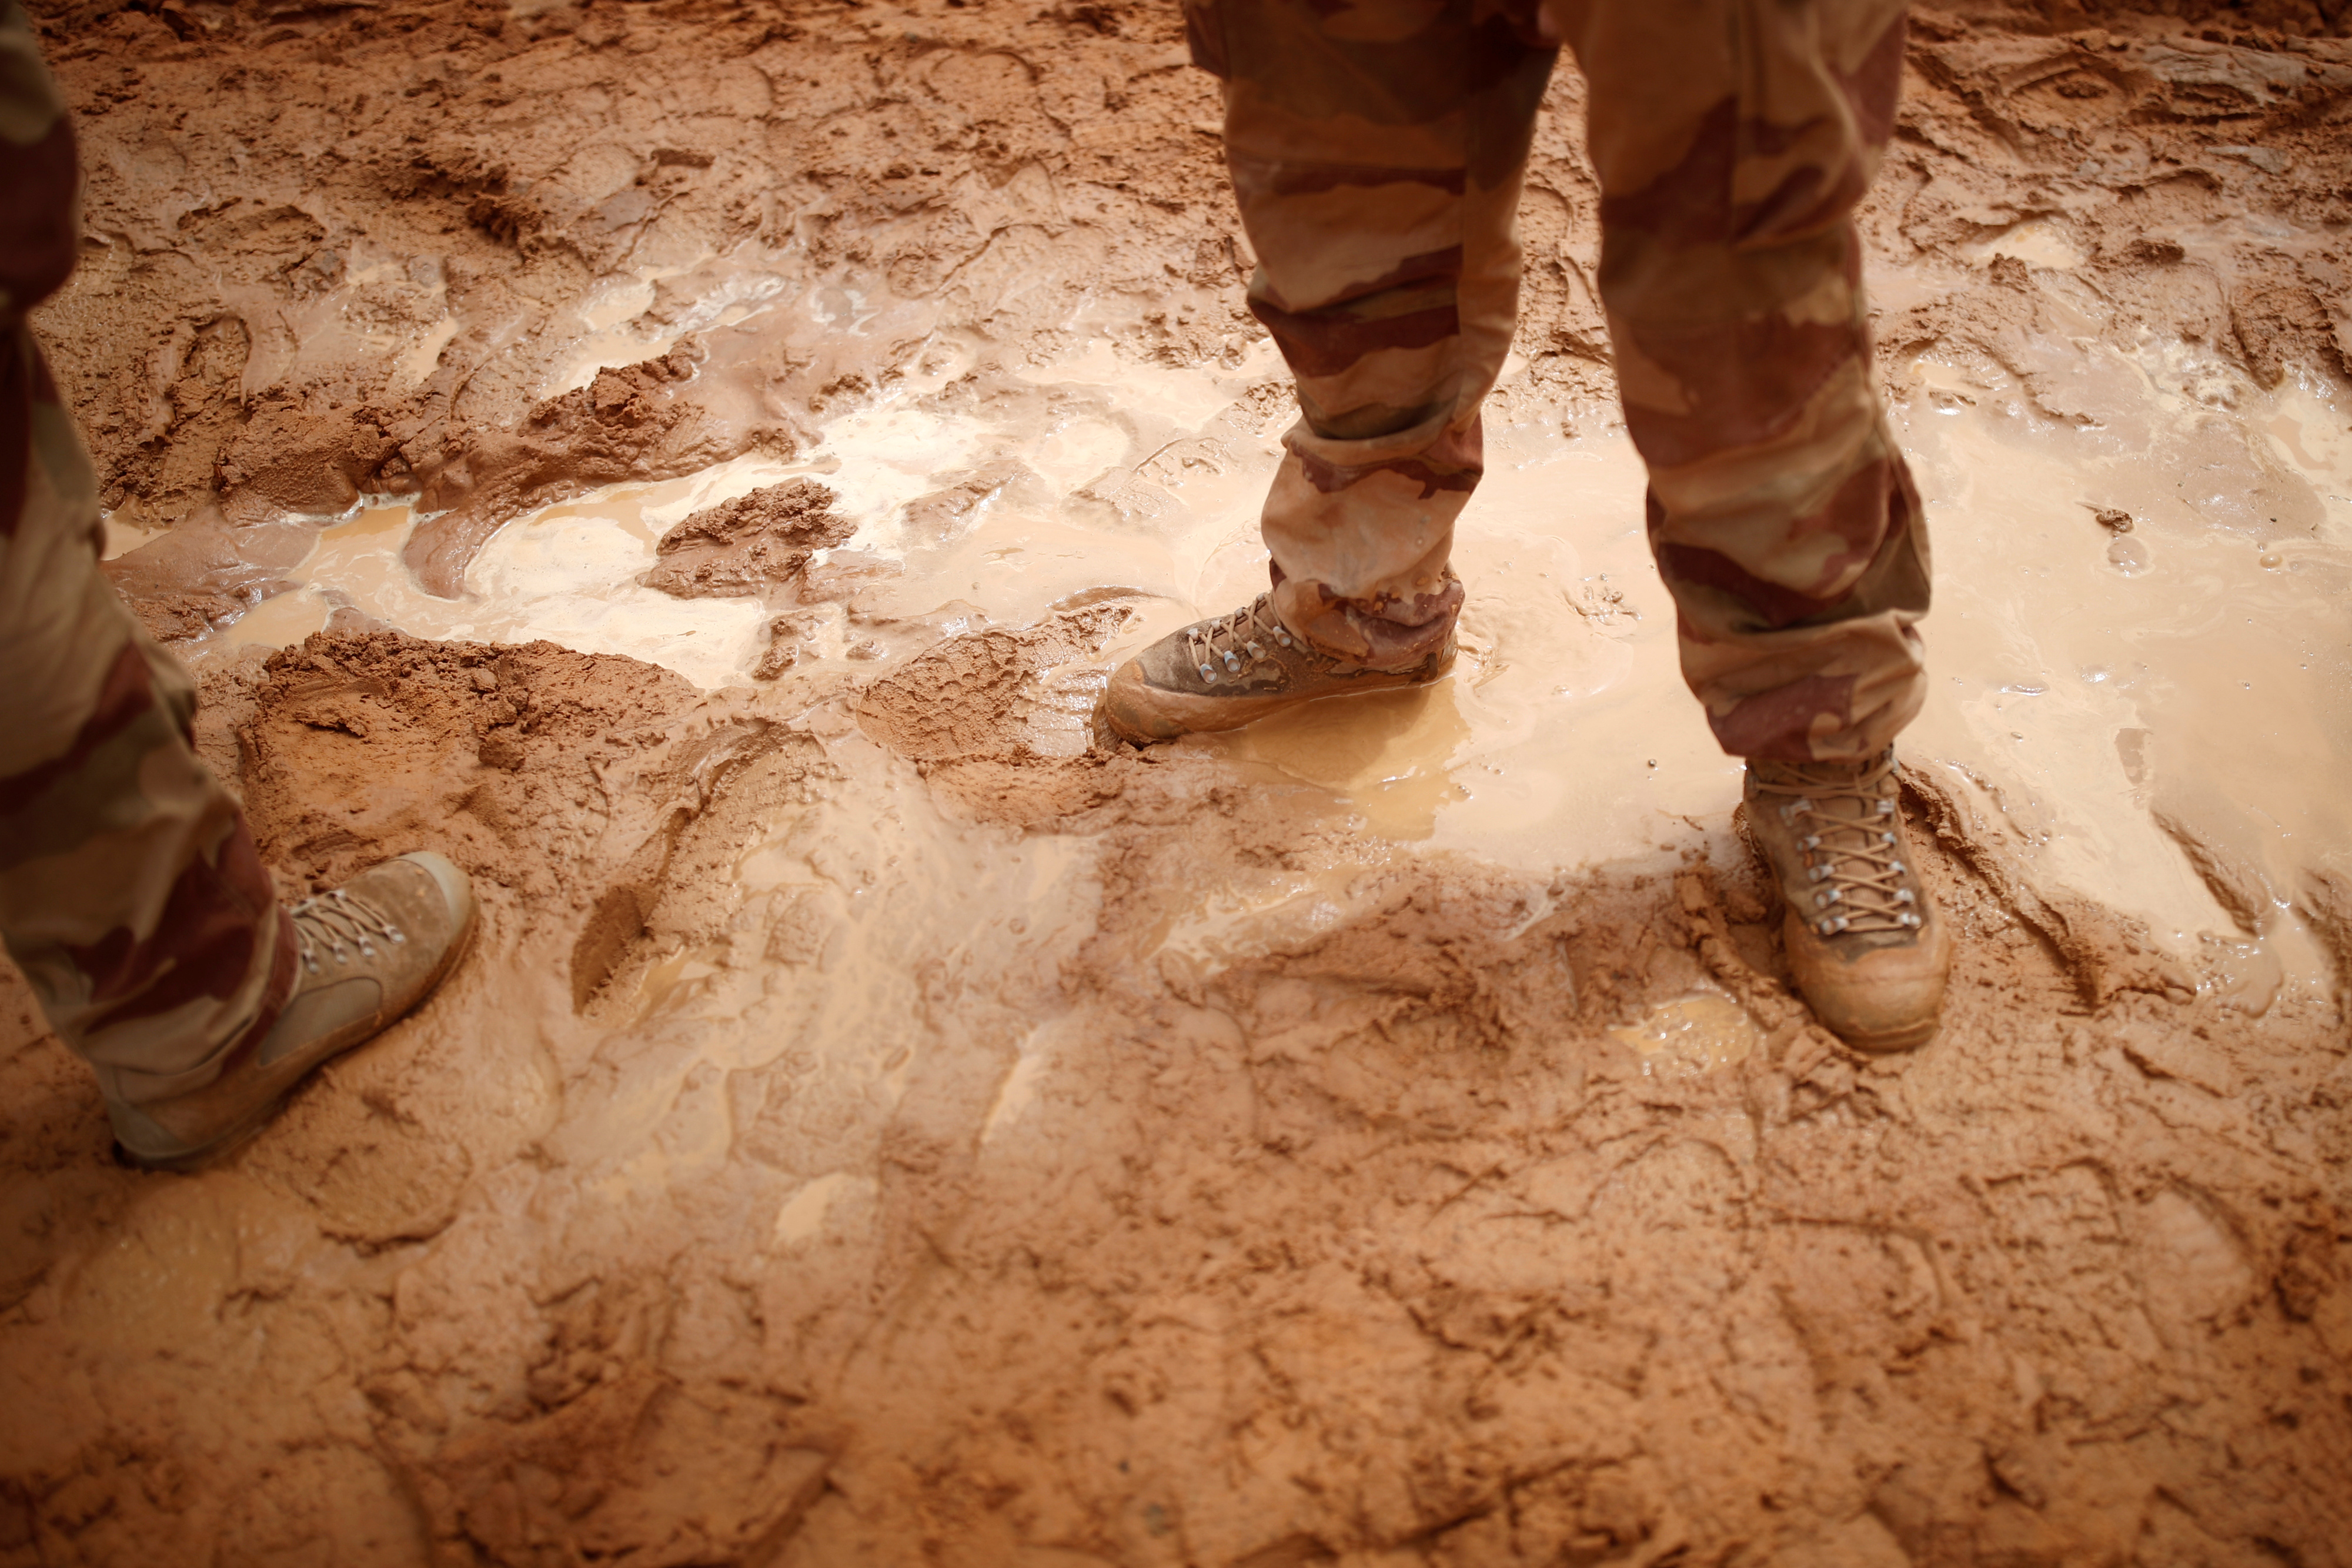 Two French soldiers killed during mission in Mali